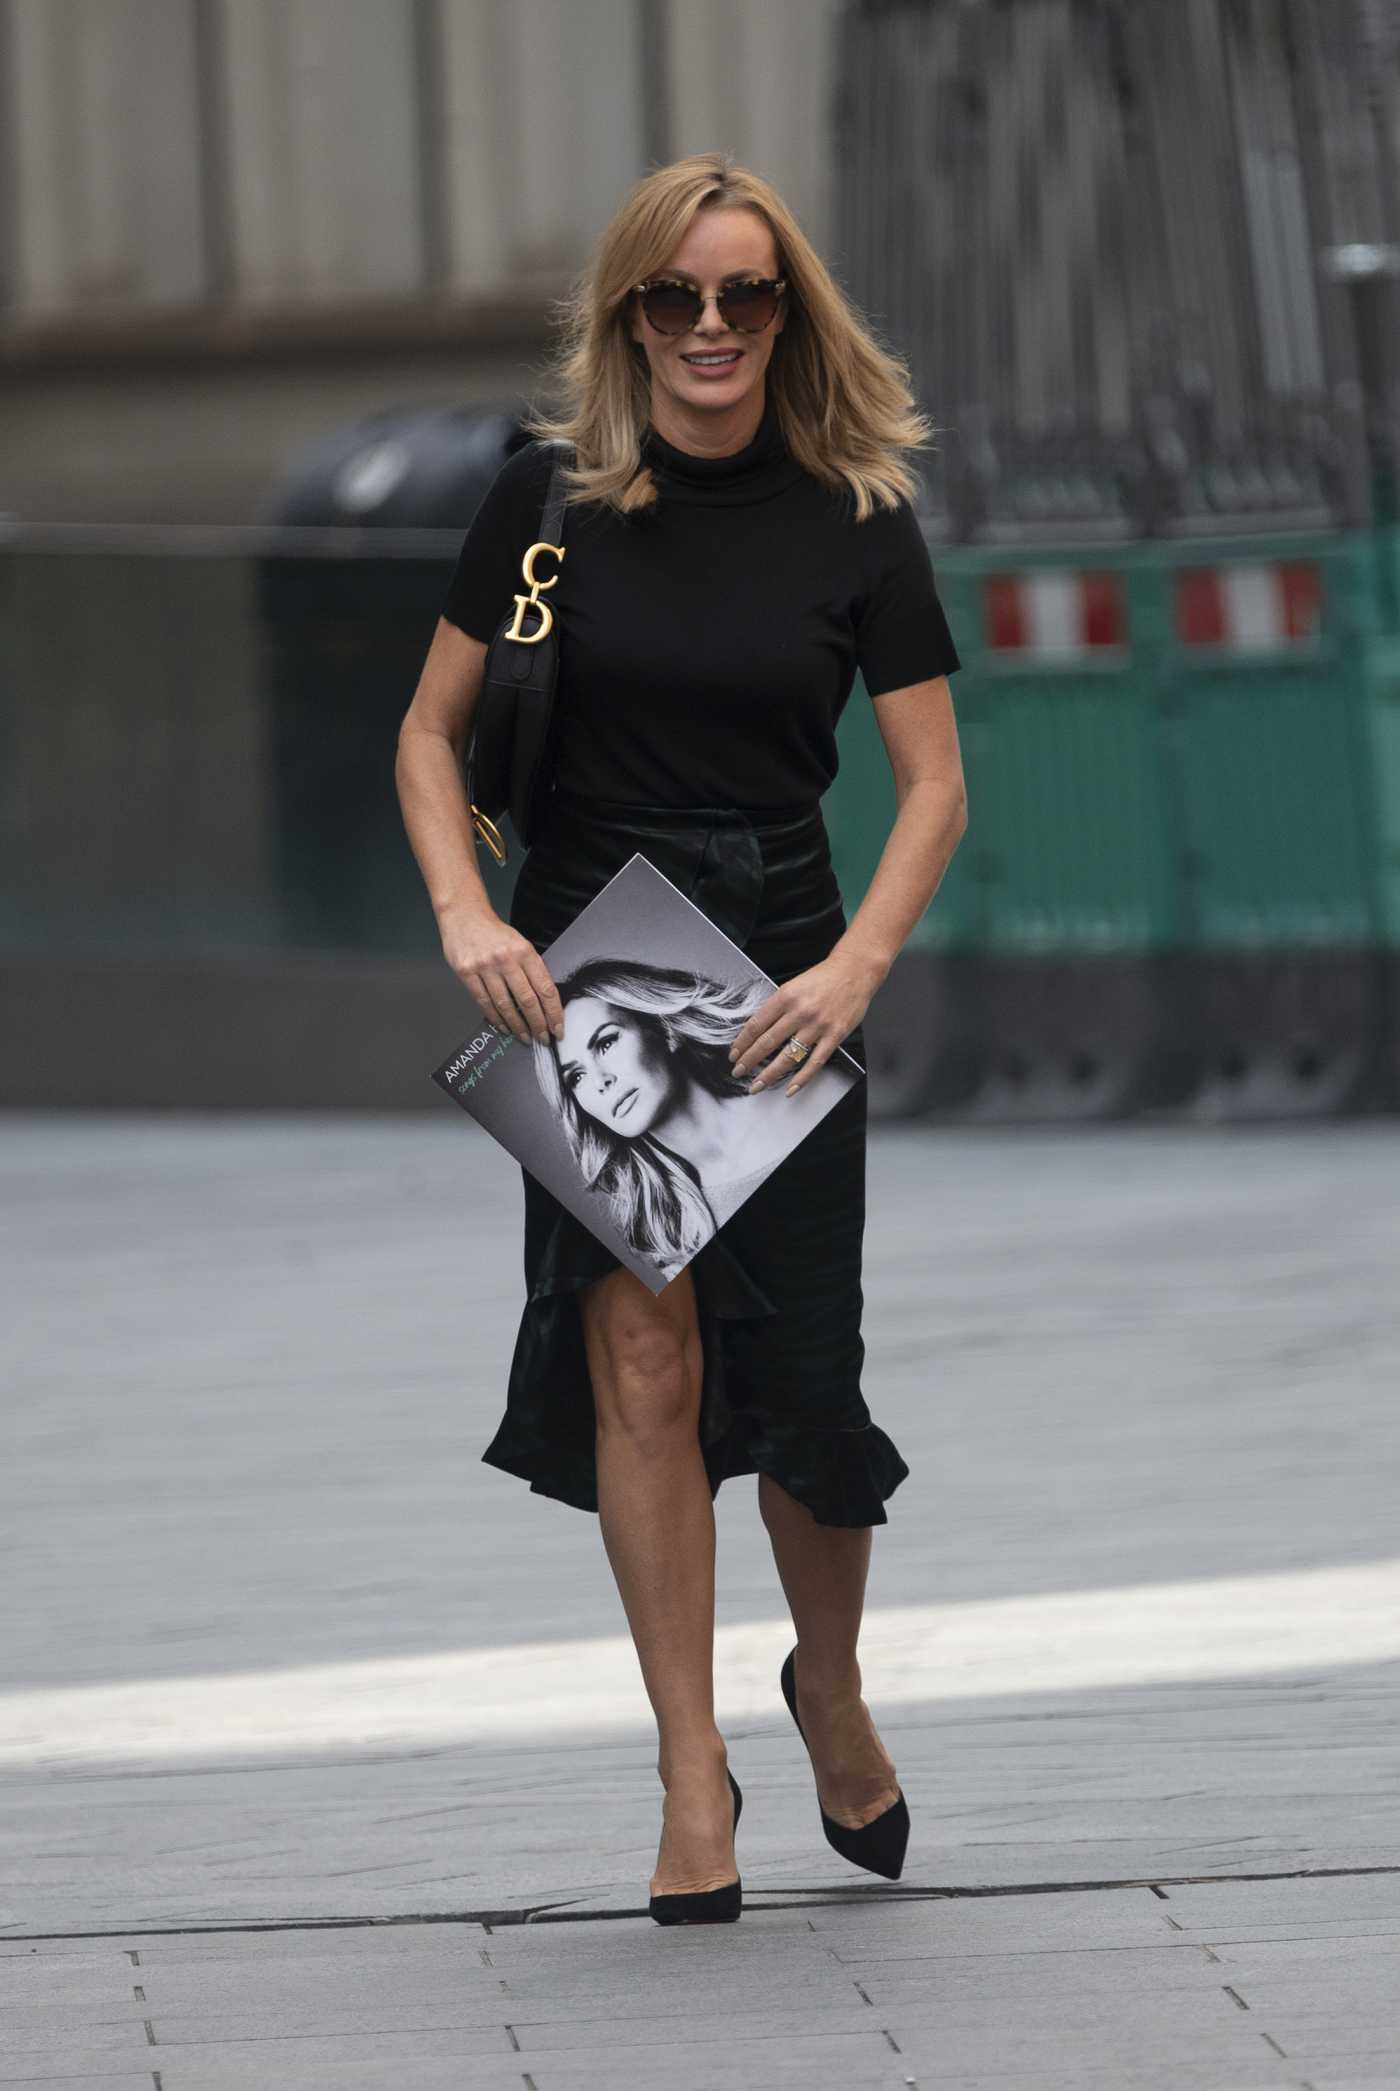 Amanda Holden in a Black Skirt Arrives at the Global Radio Studios in London 09/03/2020